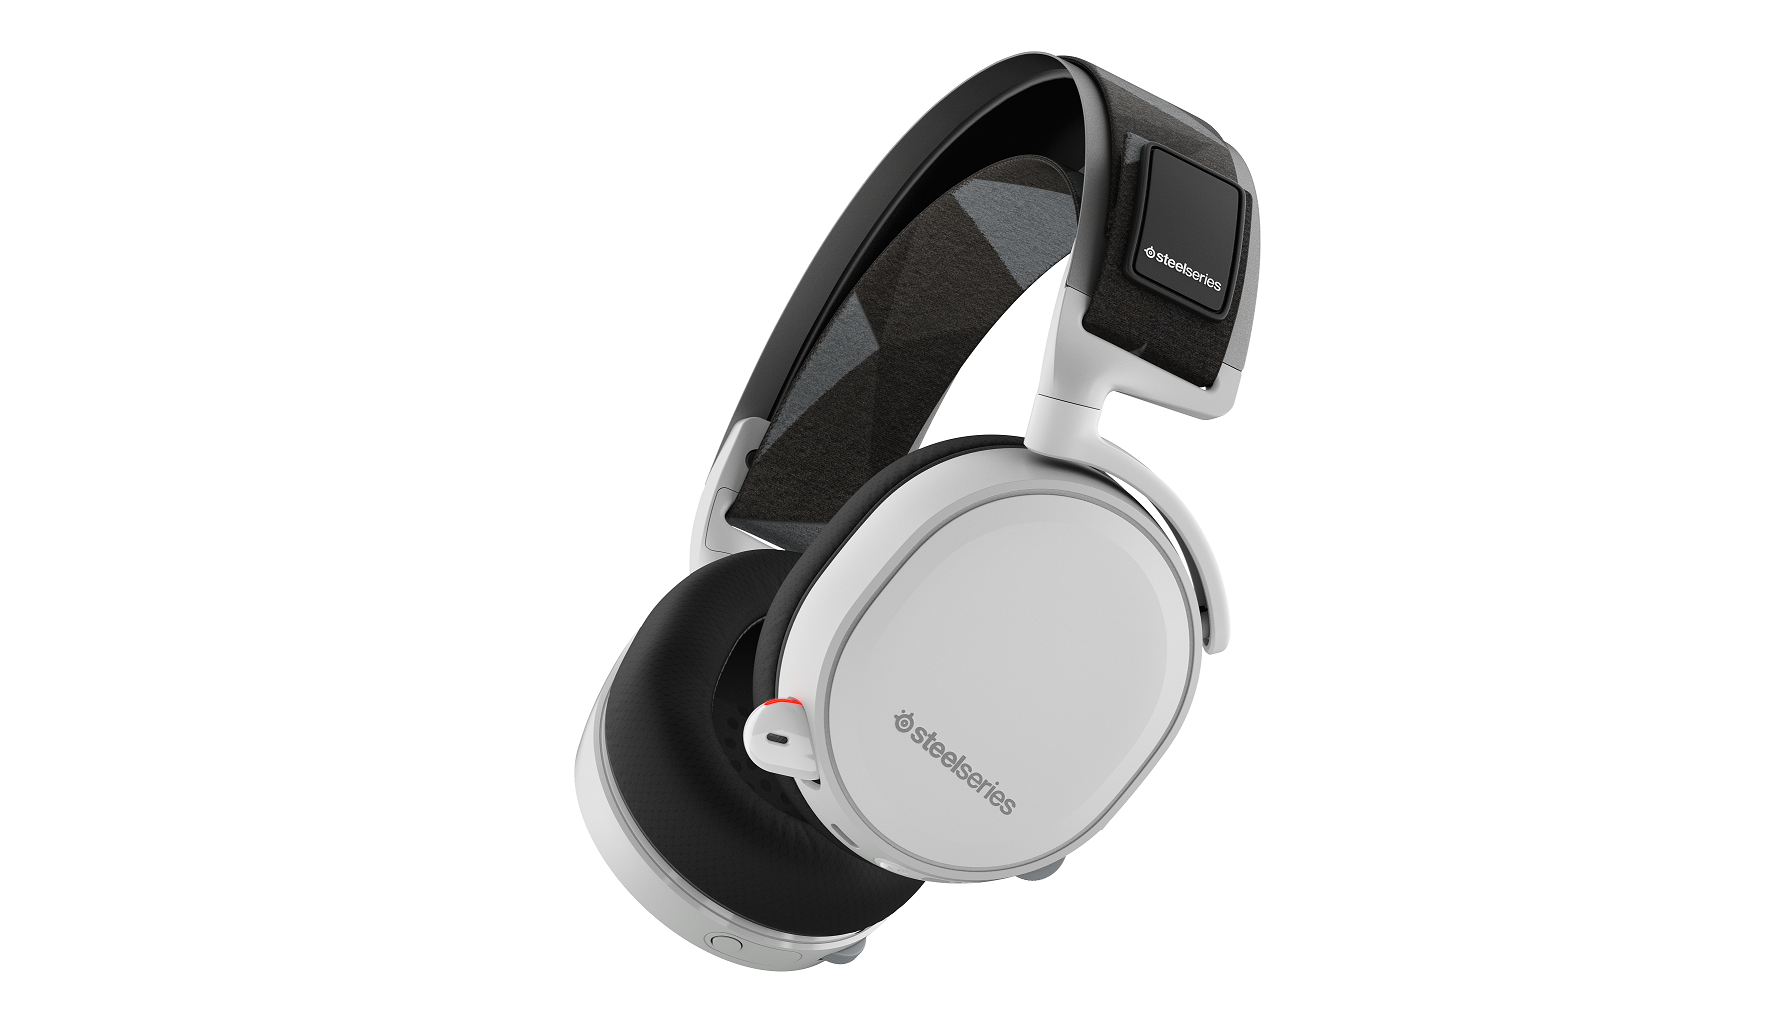 SteelSeries\u0027s Arctis 3 and Arctis 7 headsets sound great but feel ...